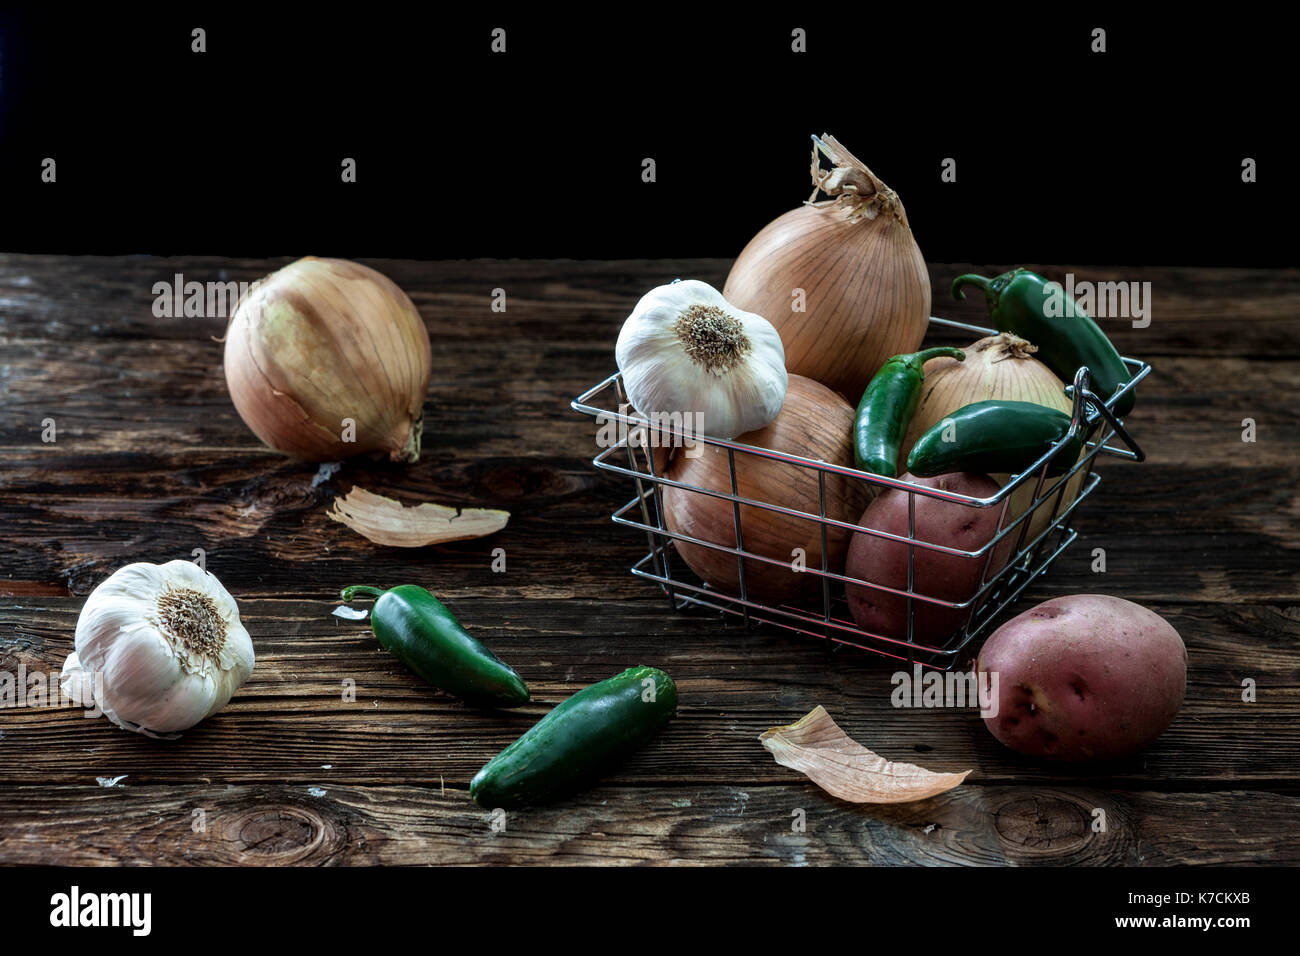 A still life photo of assorted veggies such as garlic, potatoes, peppers, and onions. - Stock Image